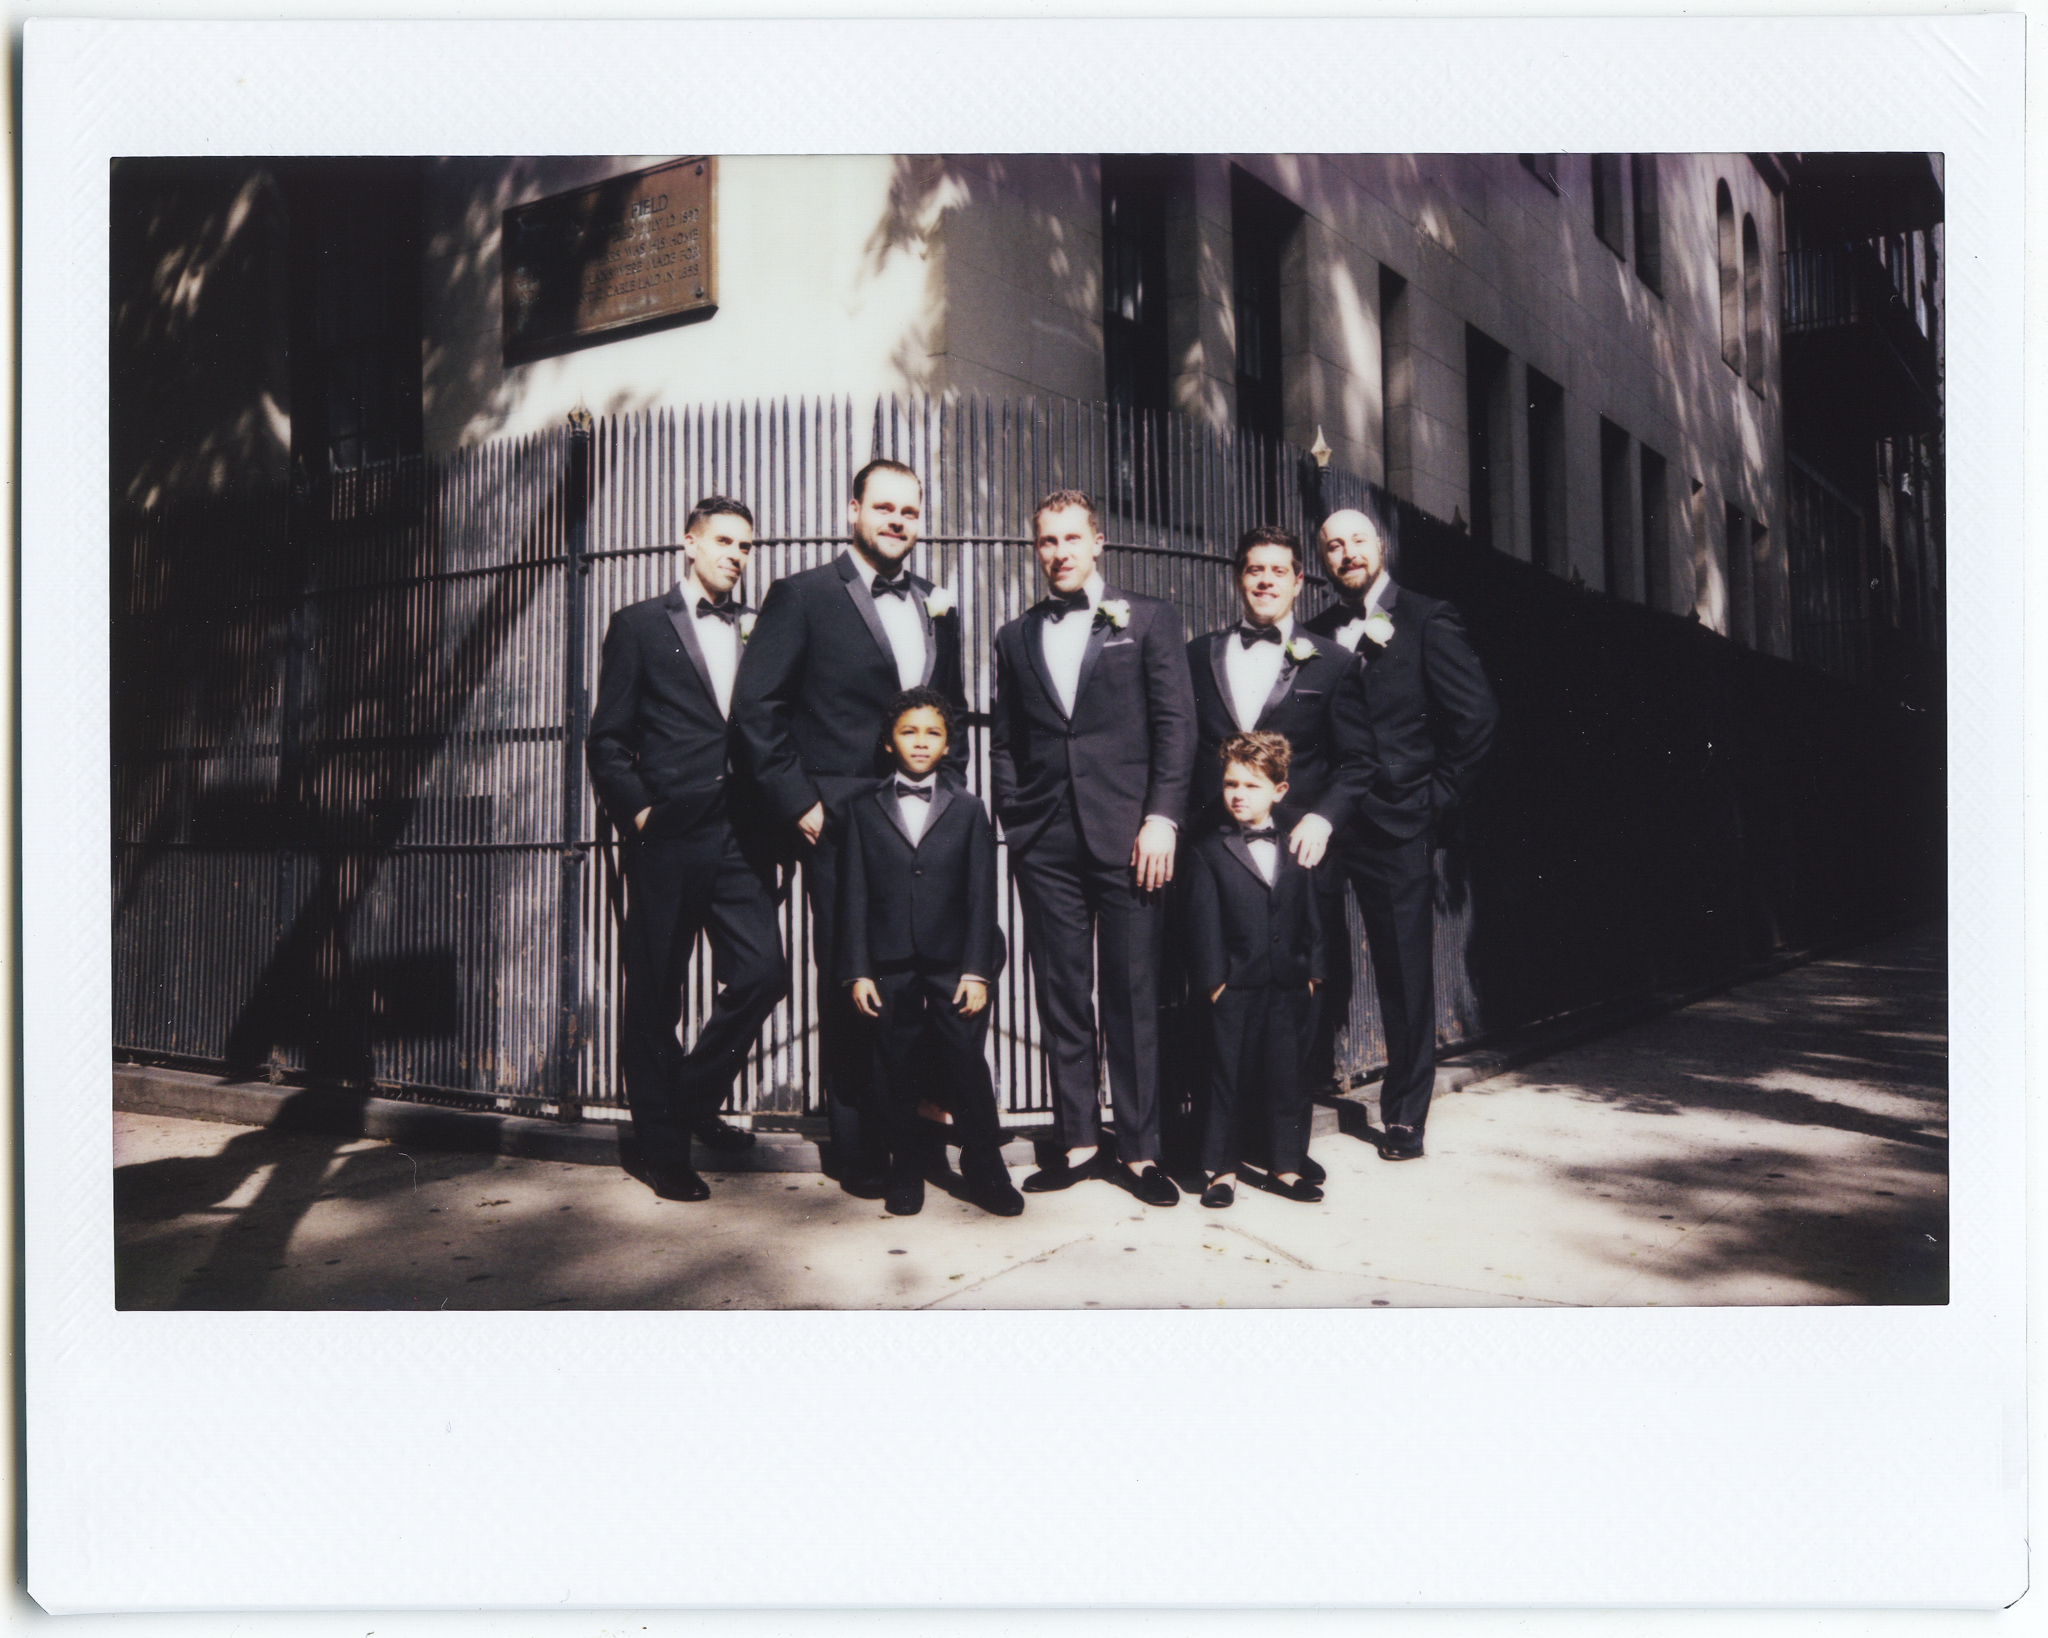 Sanford Wedding Polaroids 33.jpg